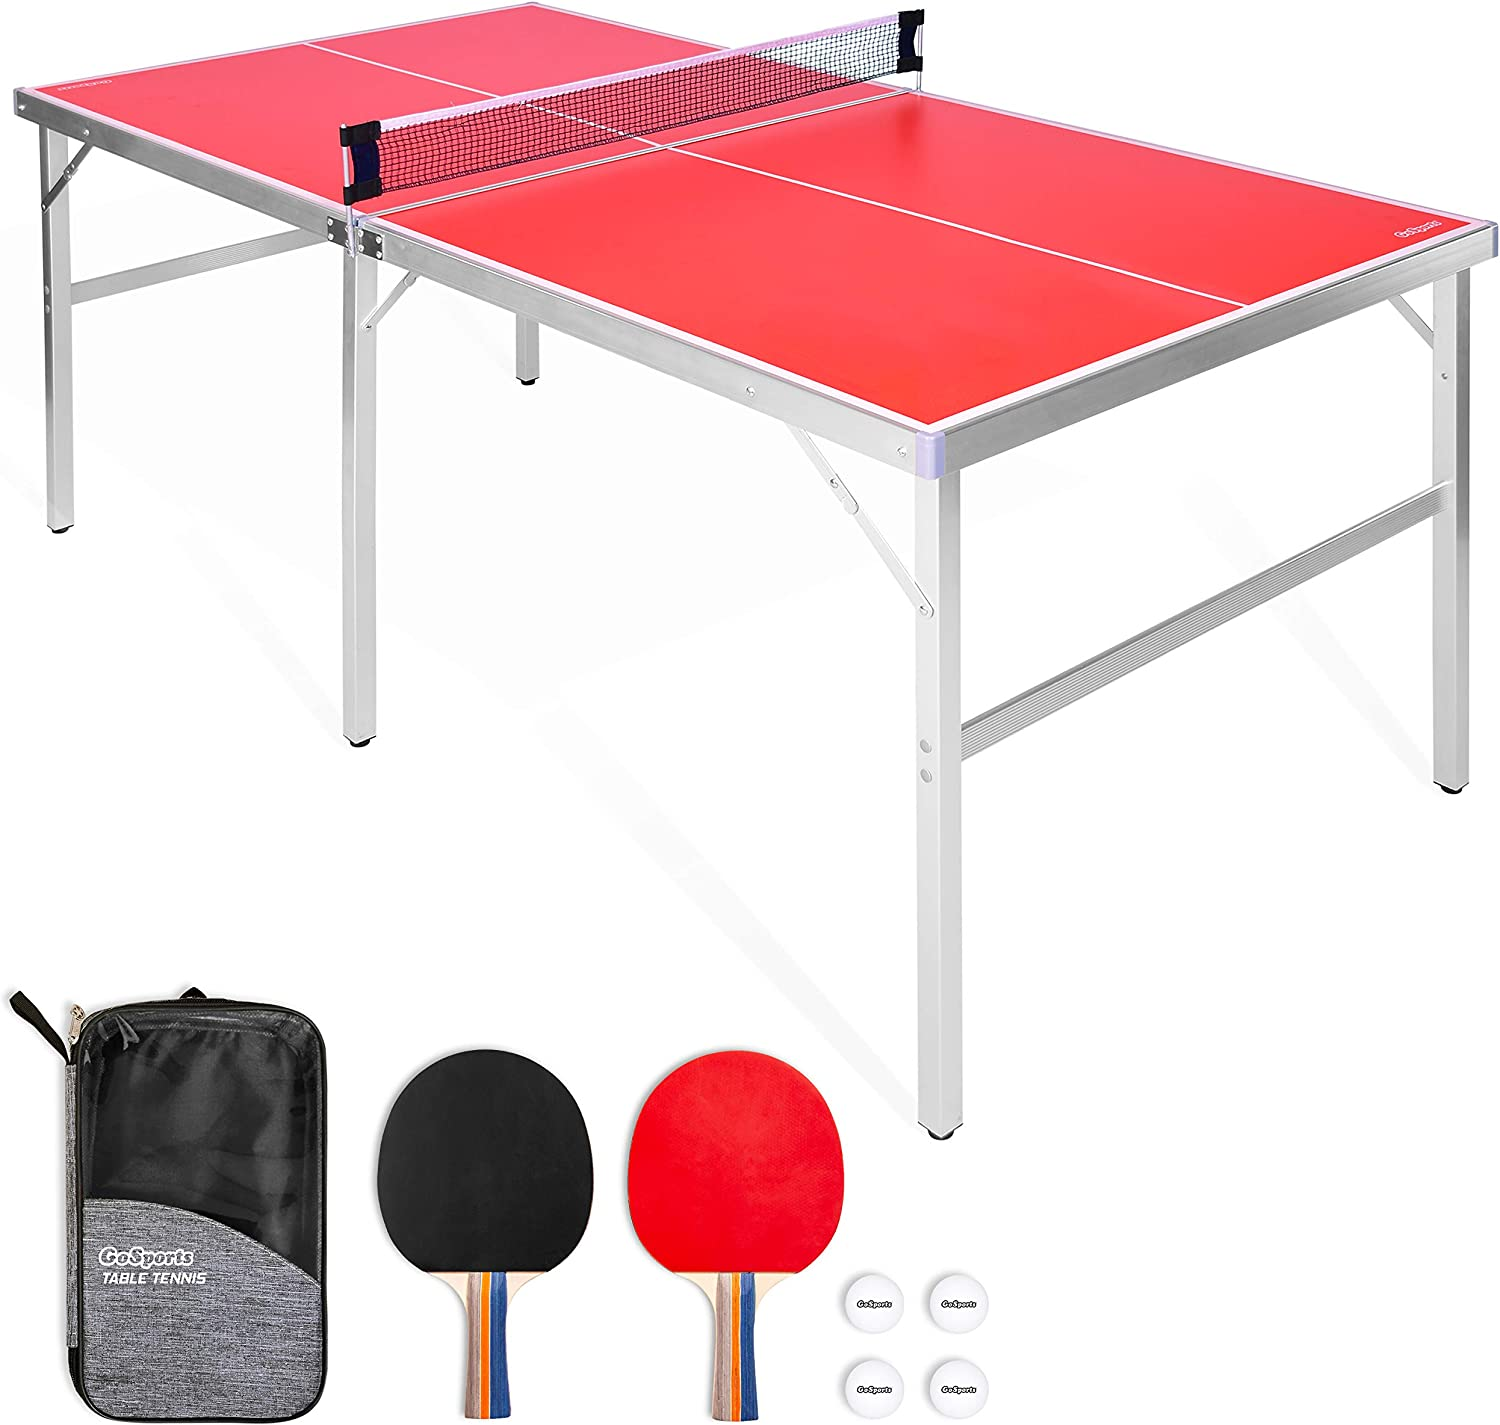 GoSports 6' x 3' Midsize Table Tennis Table